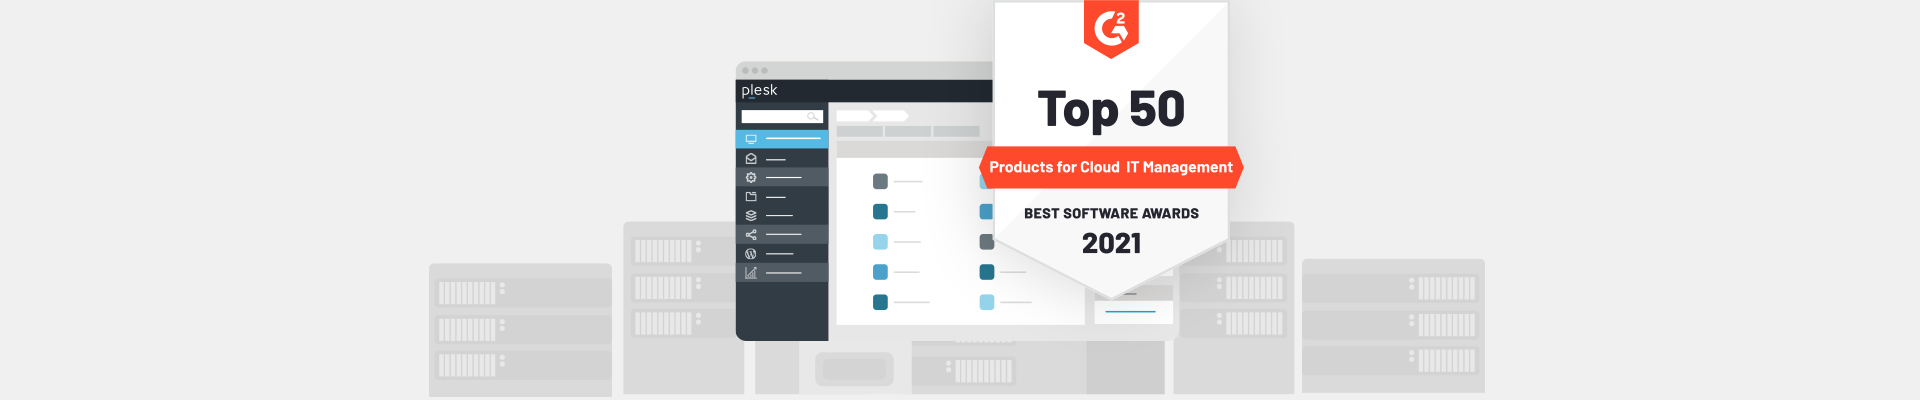 G2 aware cloud software 2021 - Plesk